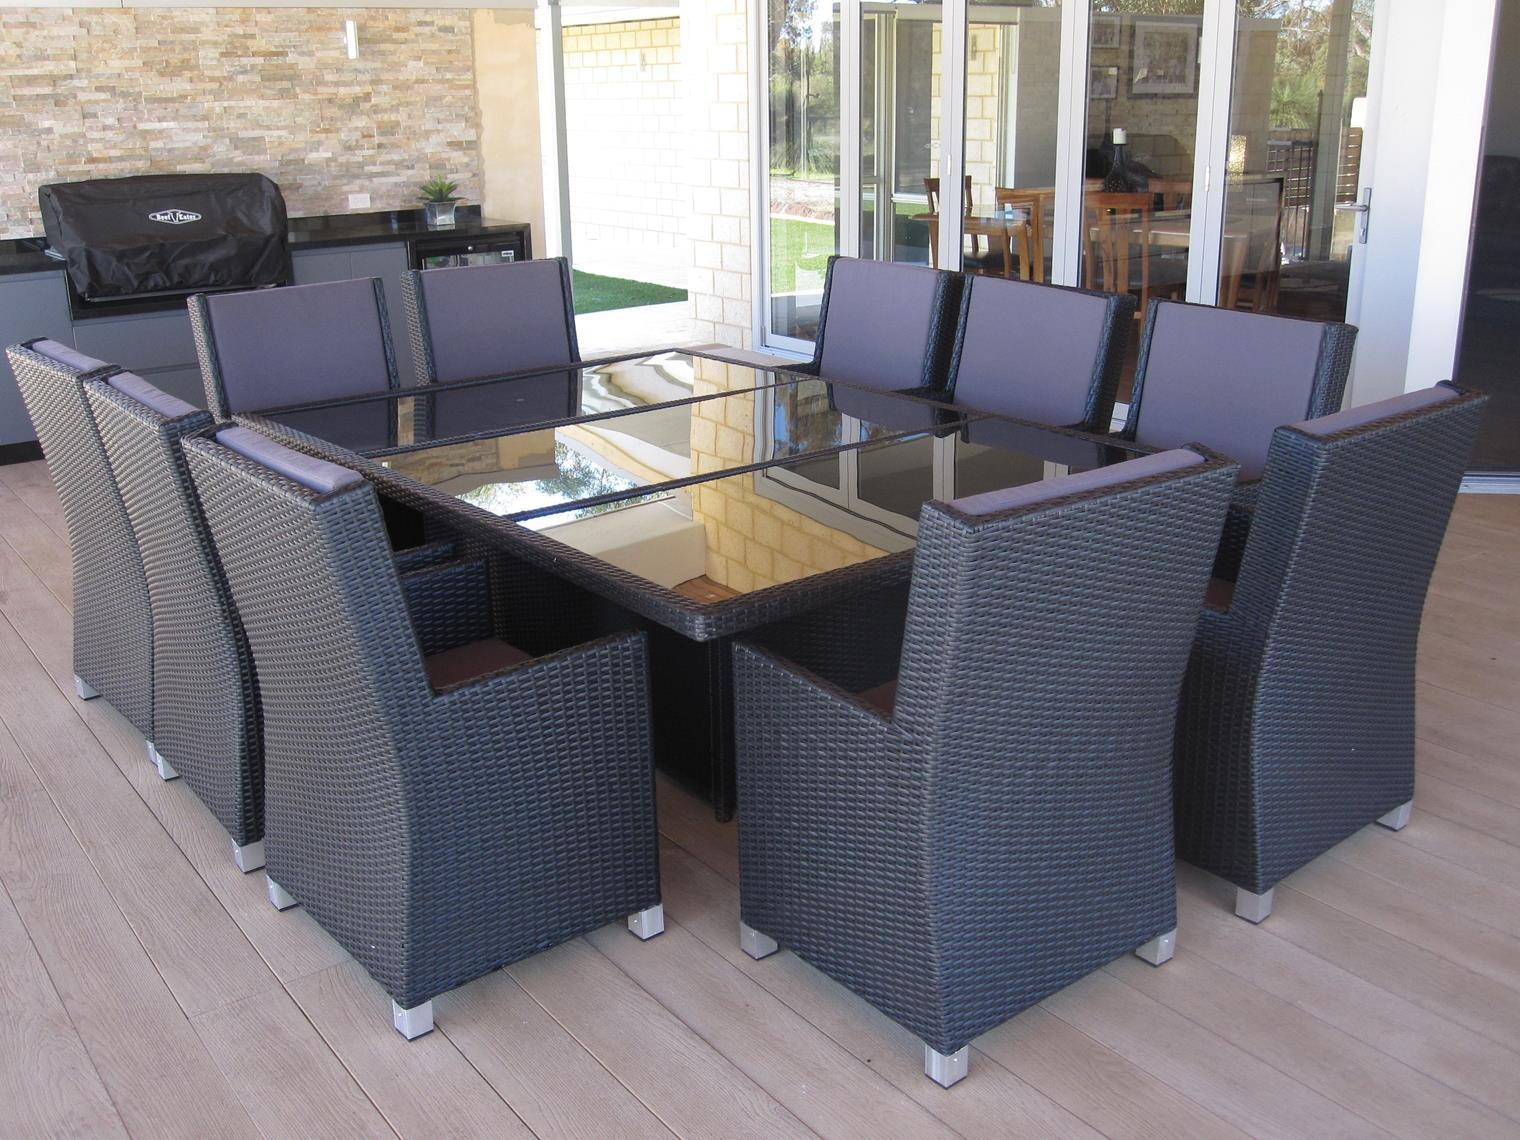 Outdoor Furniture Perth – Goodworksfurniture For Outdoor Sofa Chairs (Image 13 of 20)